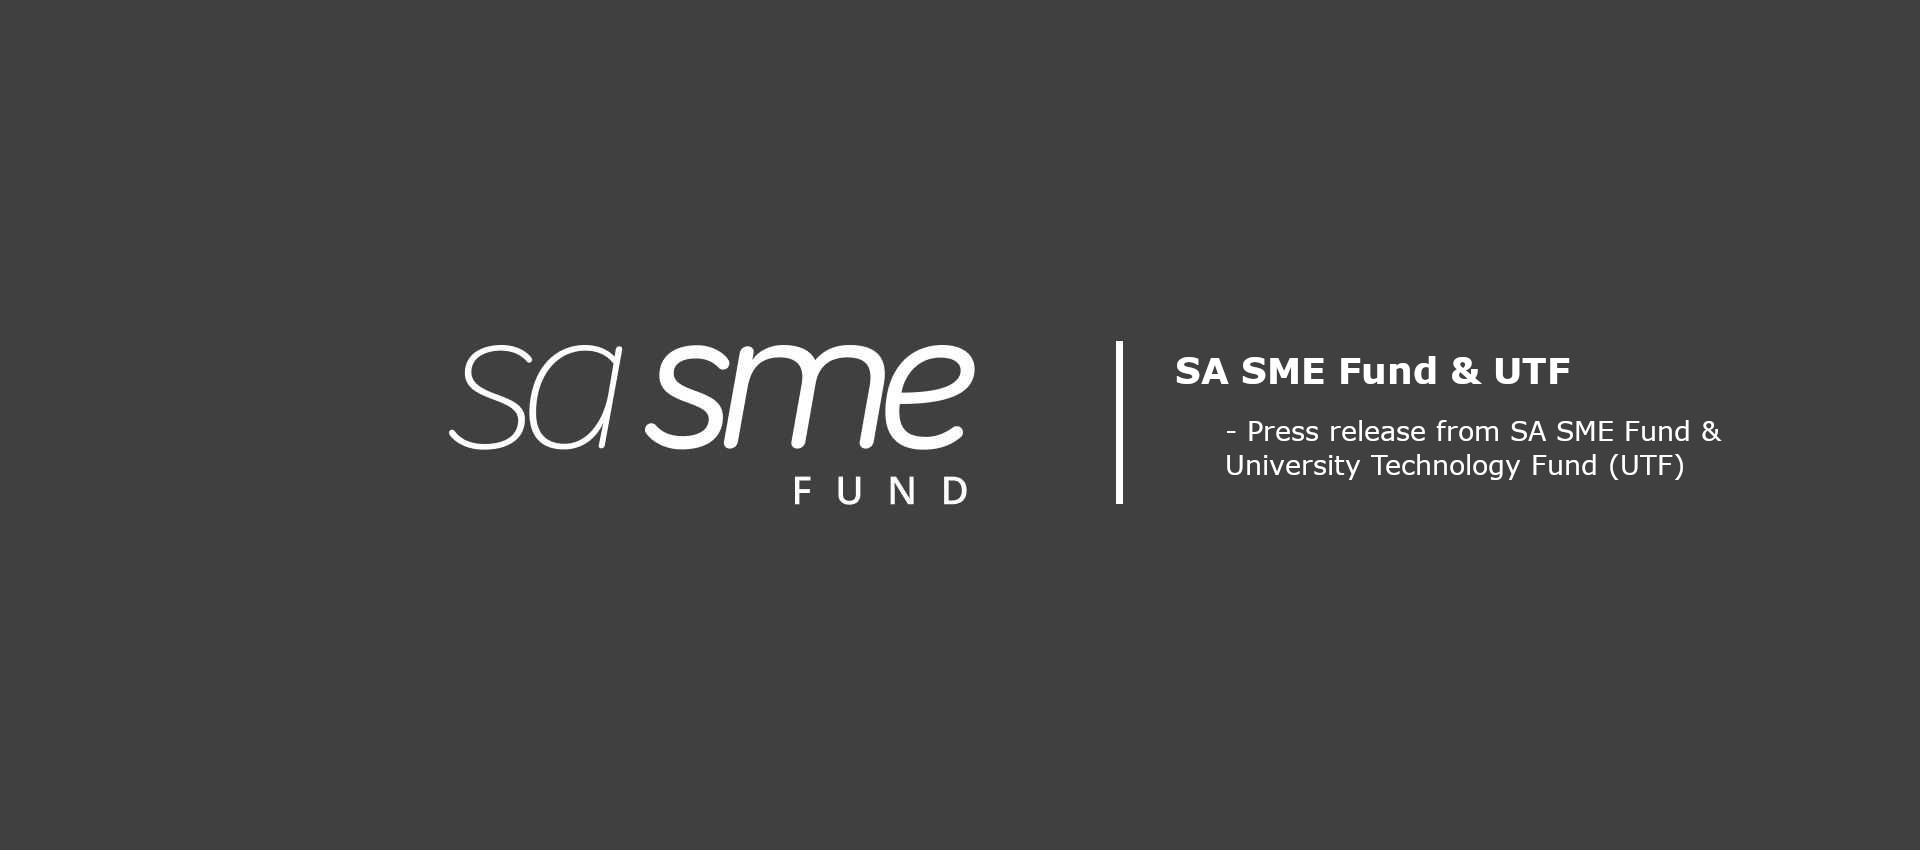 SA SME Fund invests R150 million to commercialise university tech innovation